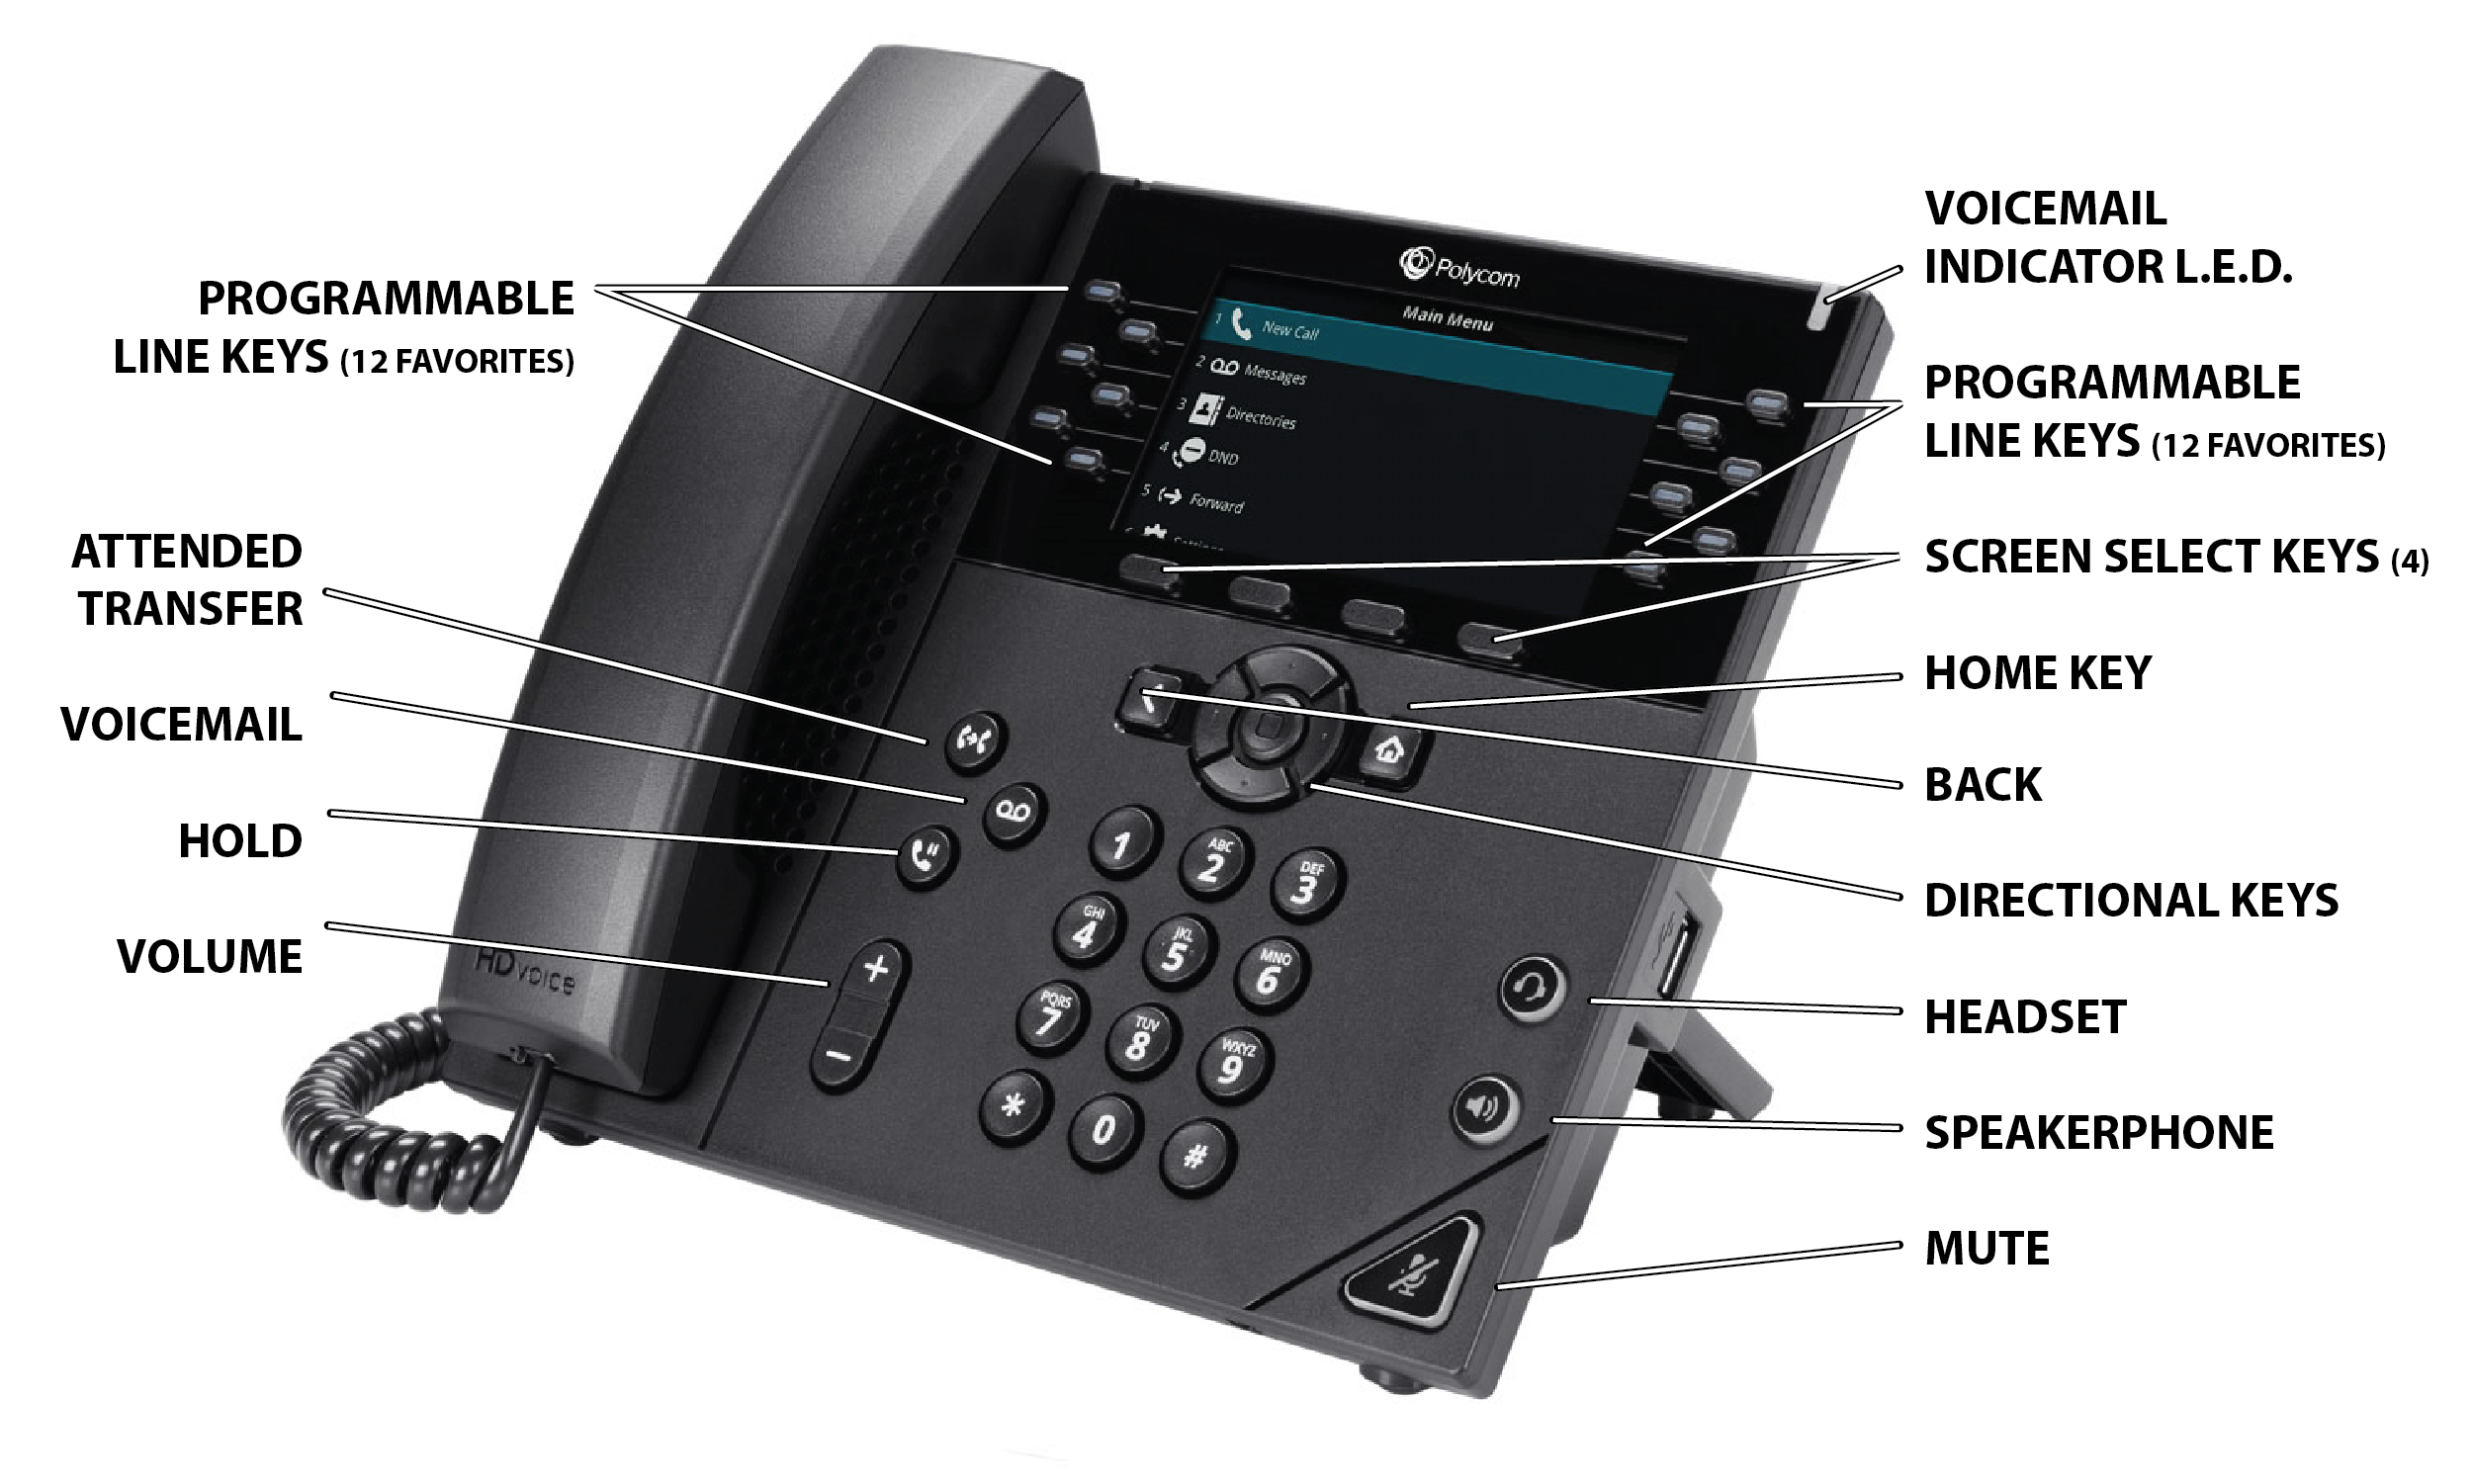 How to use a VoIP Phone, featuring the PolycomVVX450